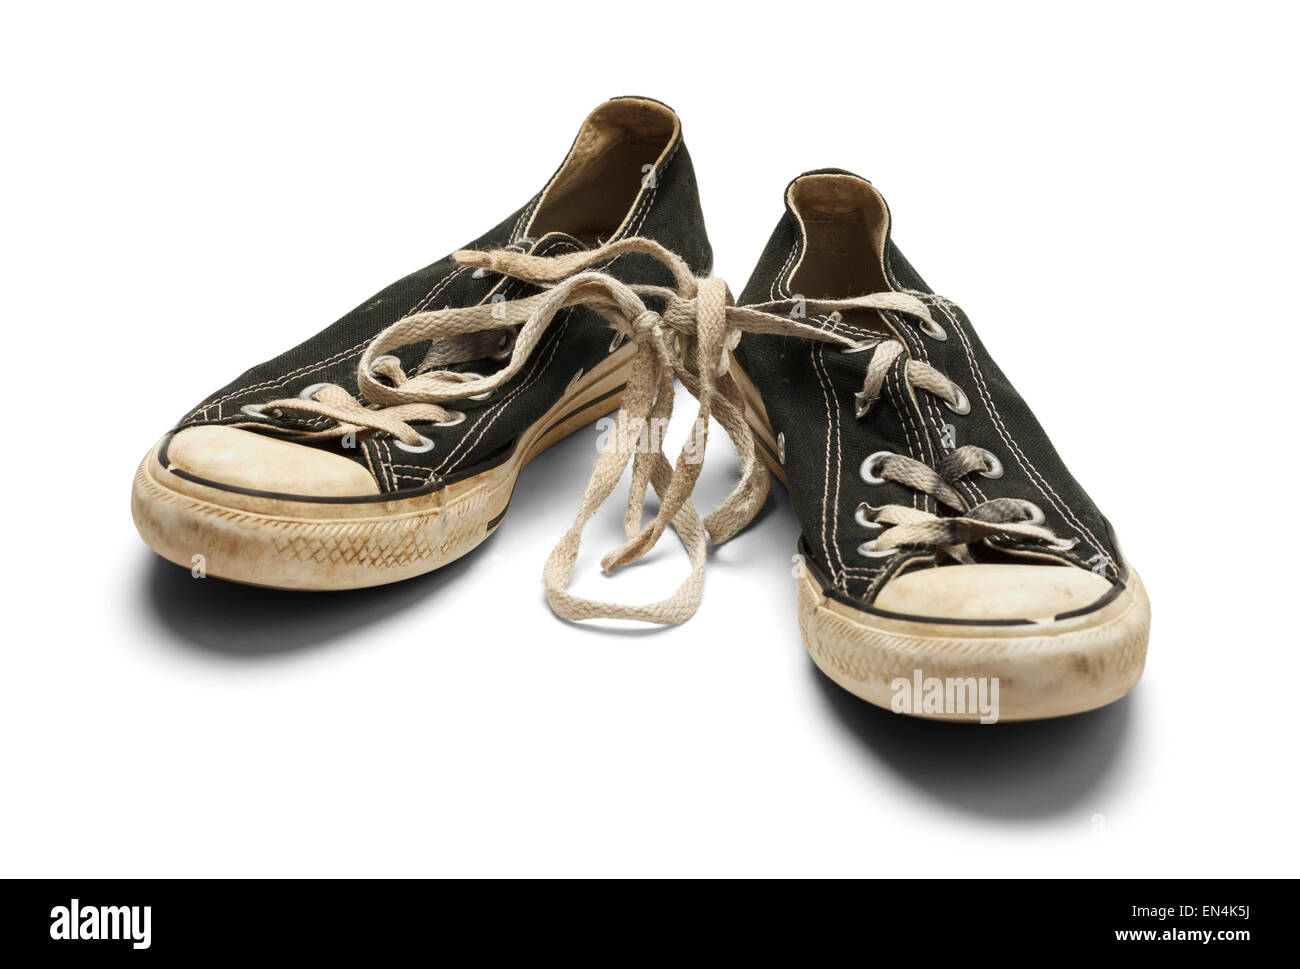 What Color Laces To Buy For White And Black Shoes